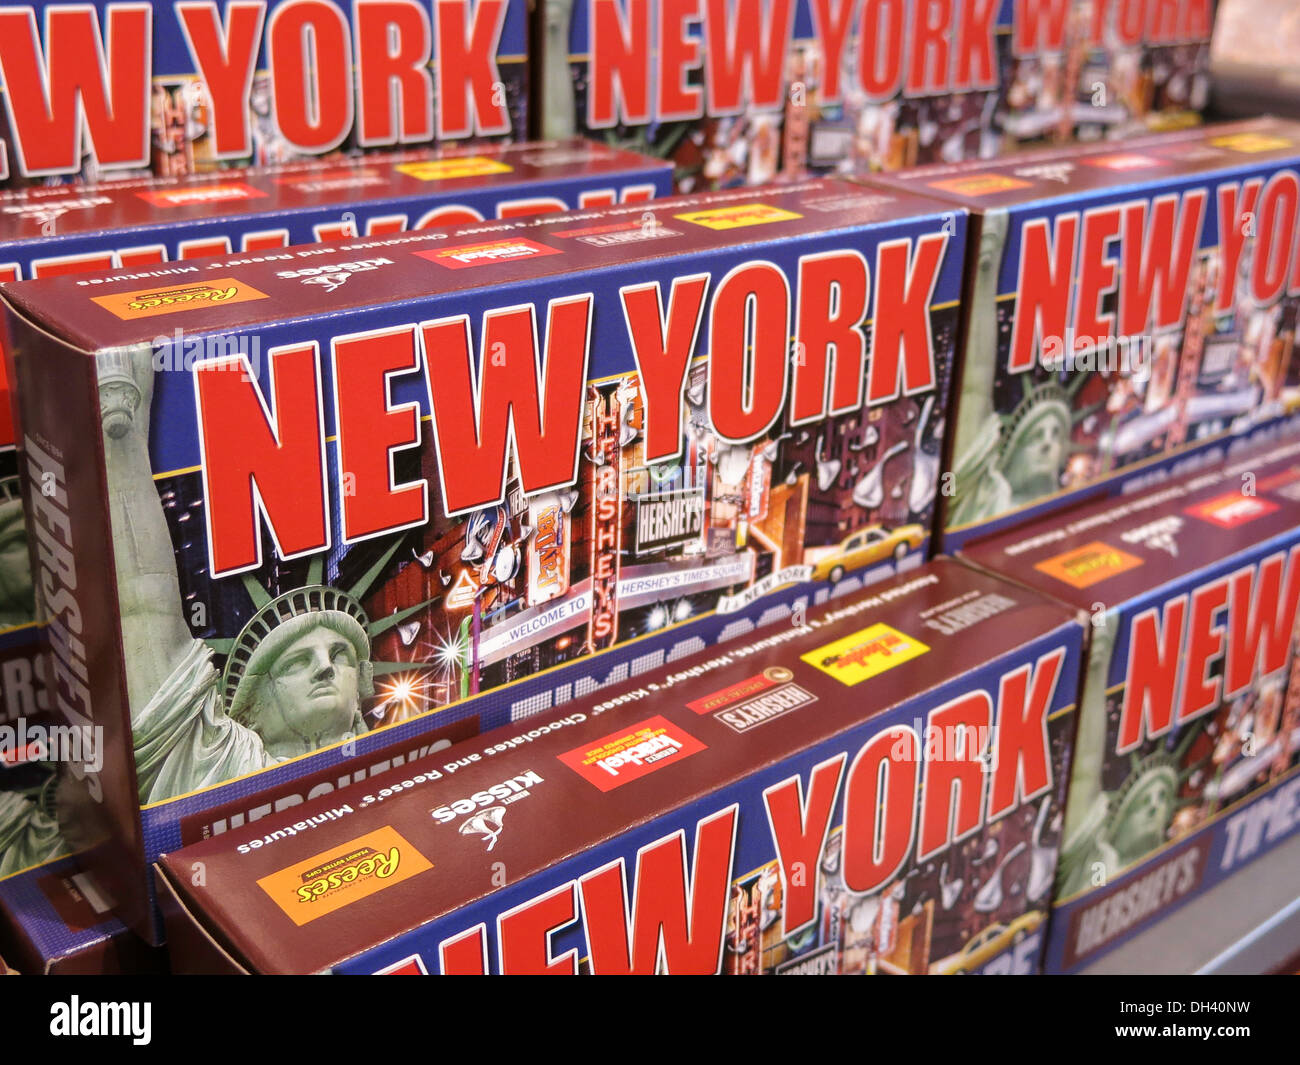 Hersheys Chocolate World Store Stock Photos & Hersheys Chocolate ...